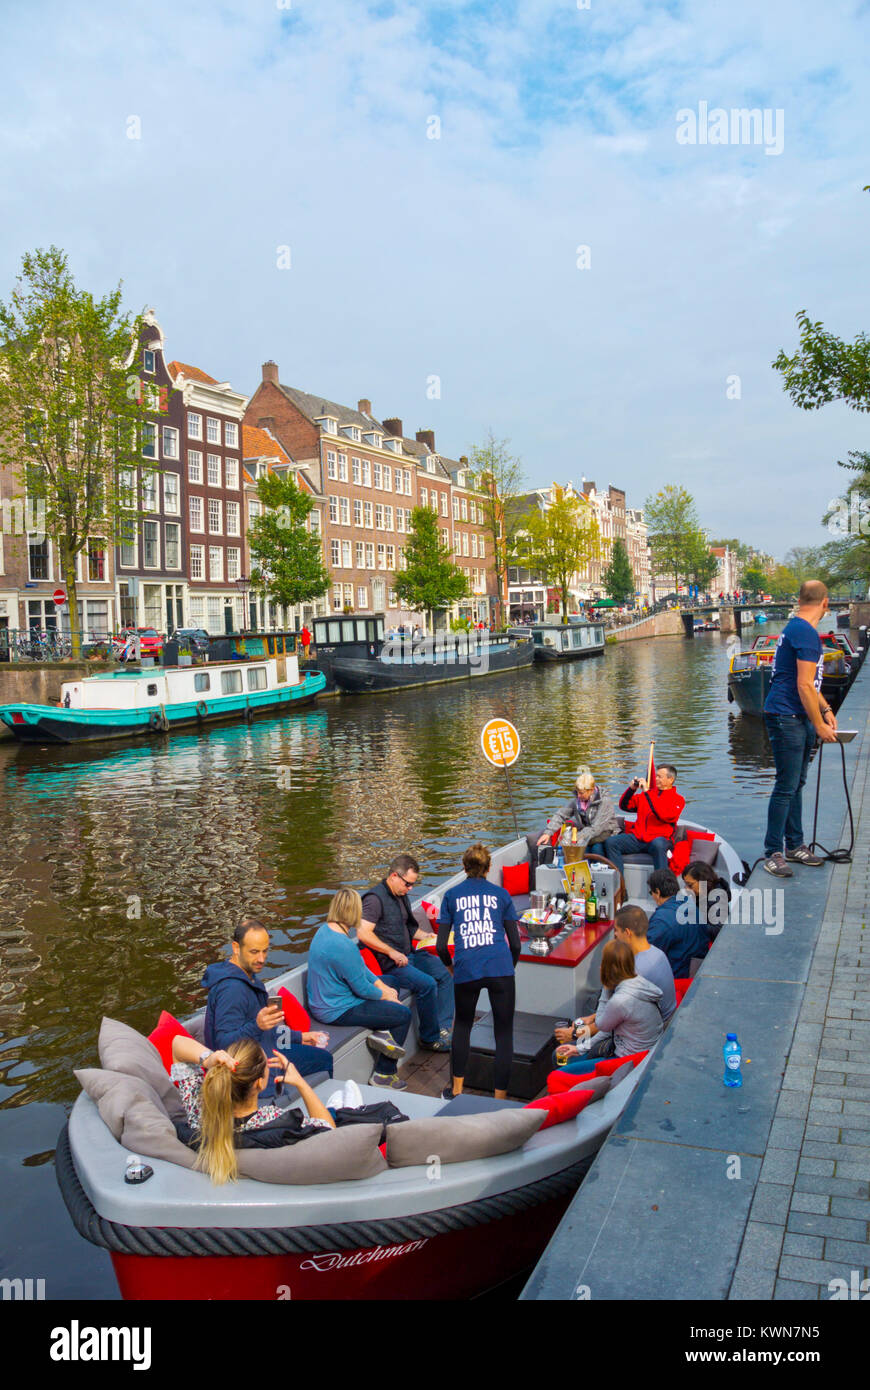 Canal tour cruise boat, Prinsengracht, Amsterdam, The Netherlands Stock Photo